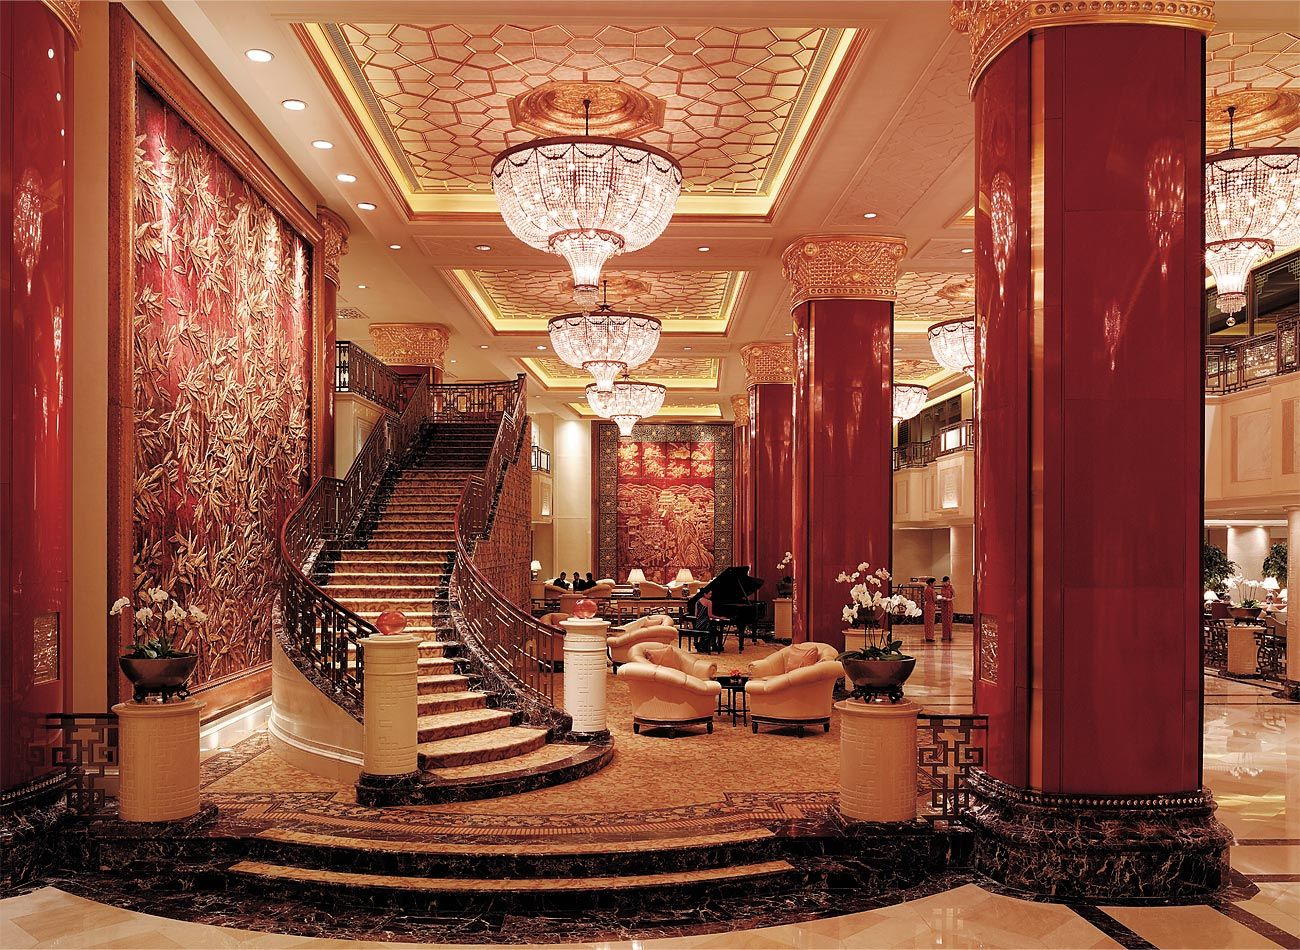 Lobby At 5 Star Hotel Shangri Las China World Beijing This Hotels Address Is No 1 Jianguomenwai Avenue CBD 100004 And Have 716 Rooms